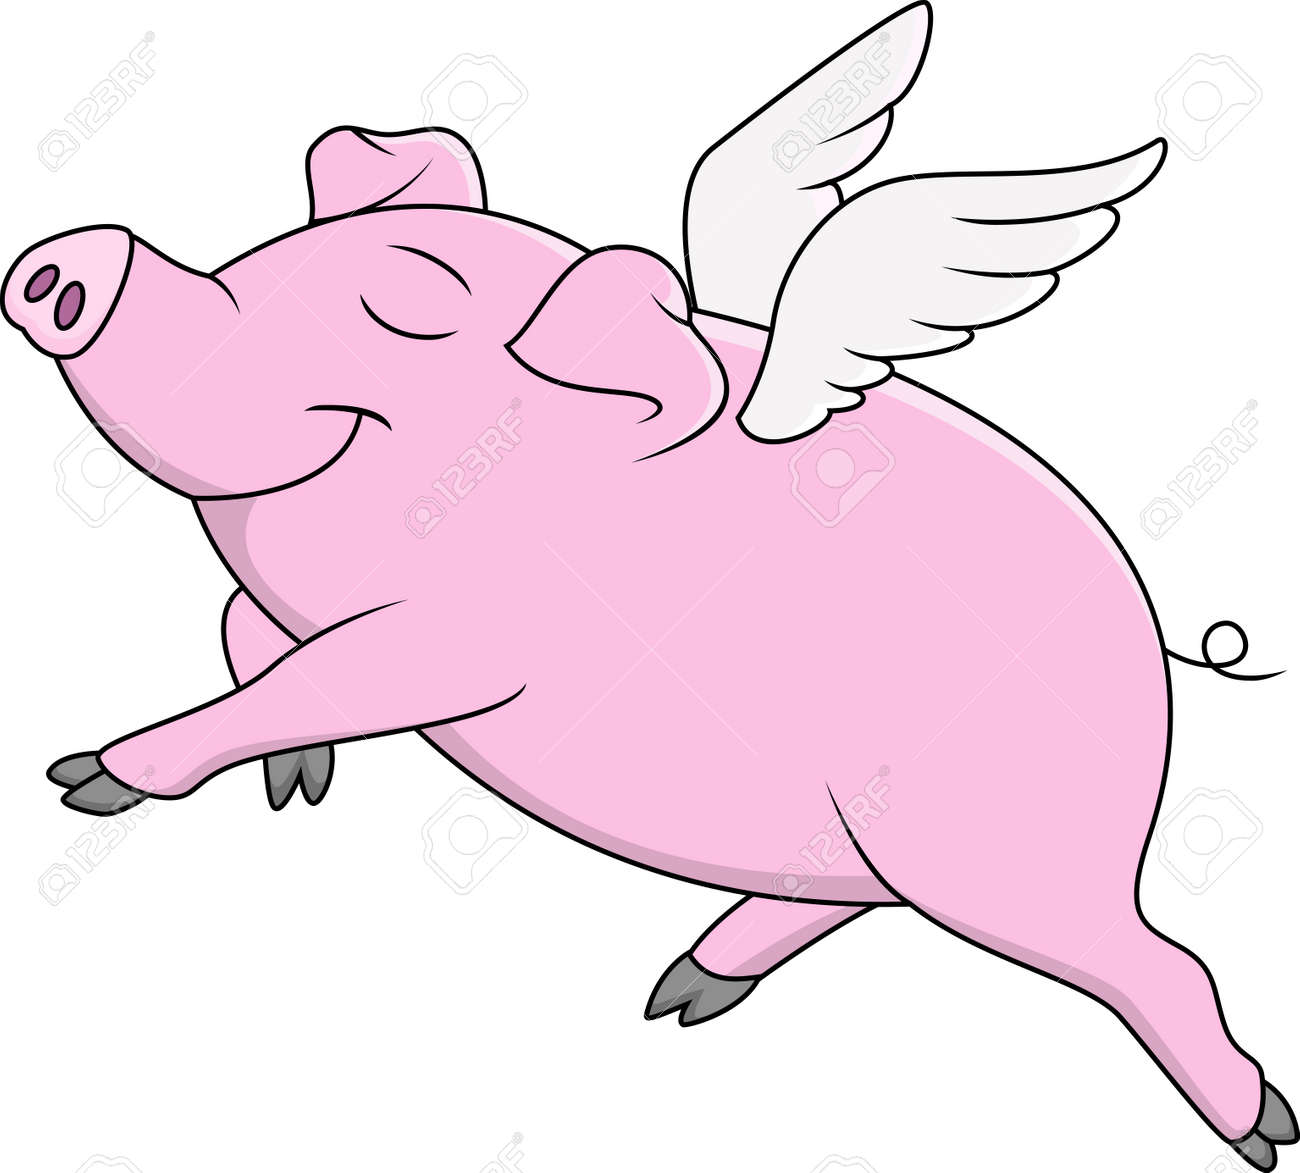 Flying Pig Stock Photos. Royalty Free Flying Pig Images And Pictures